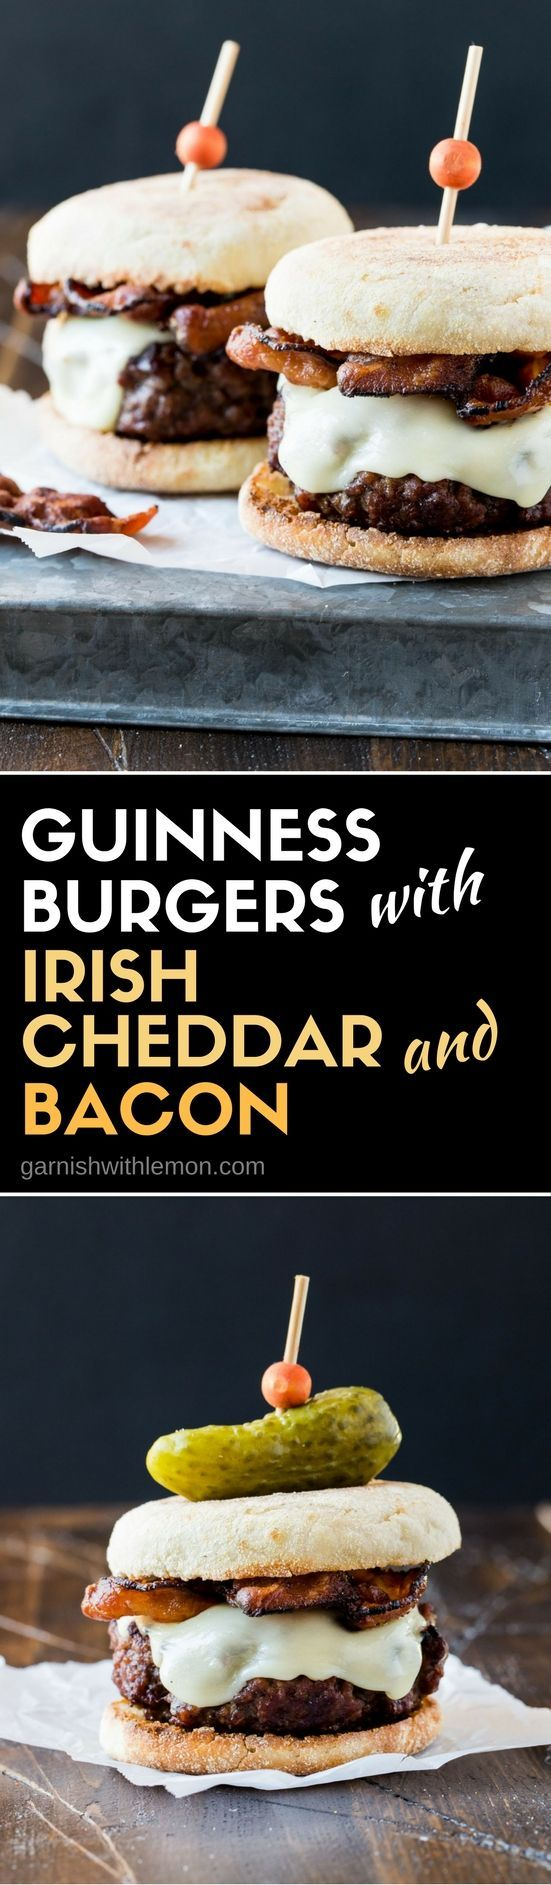 Looking for St. Patrick's Day party food? Add this Guinness Burger with Irish Cheddar and Bacon to your menu!